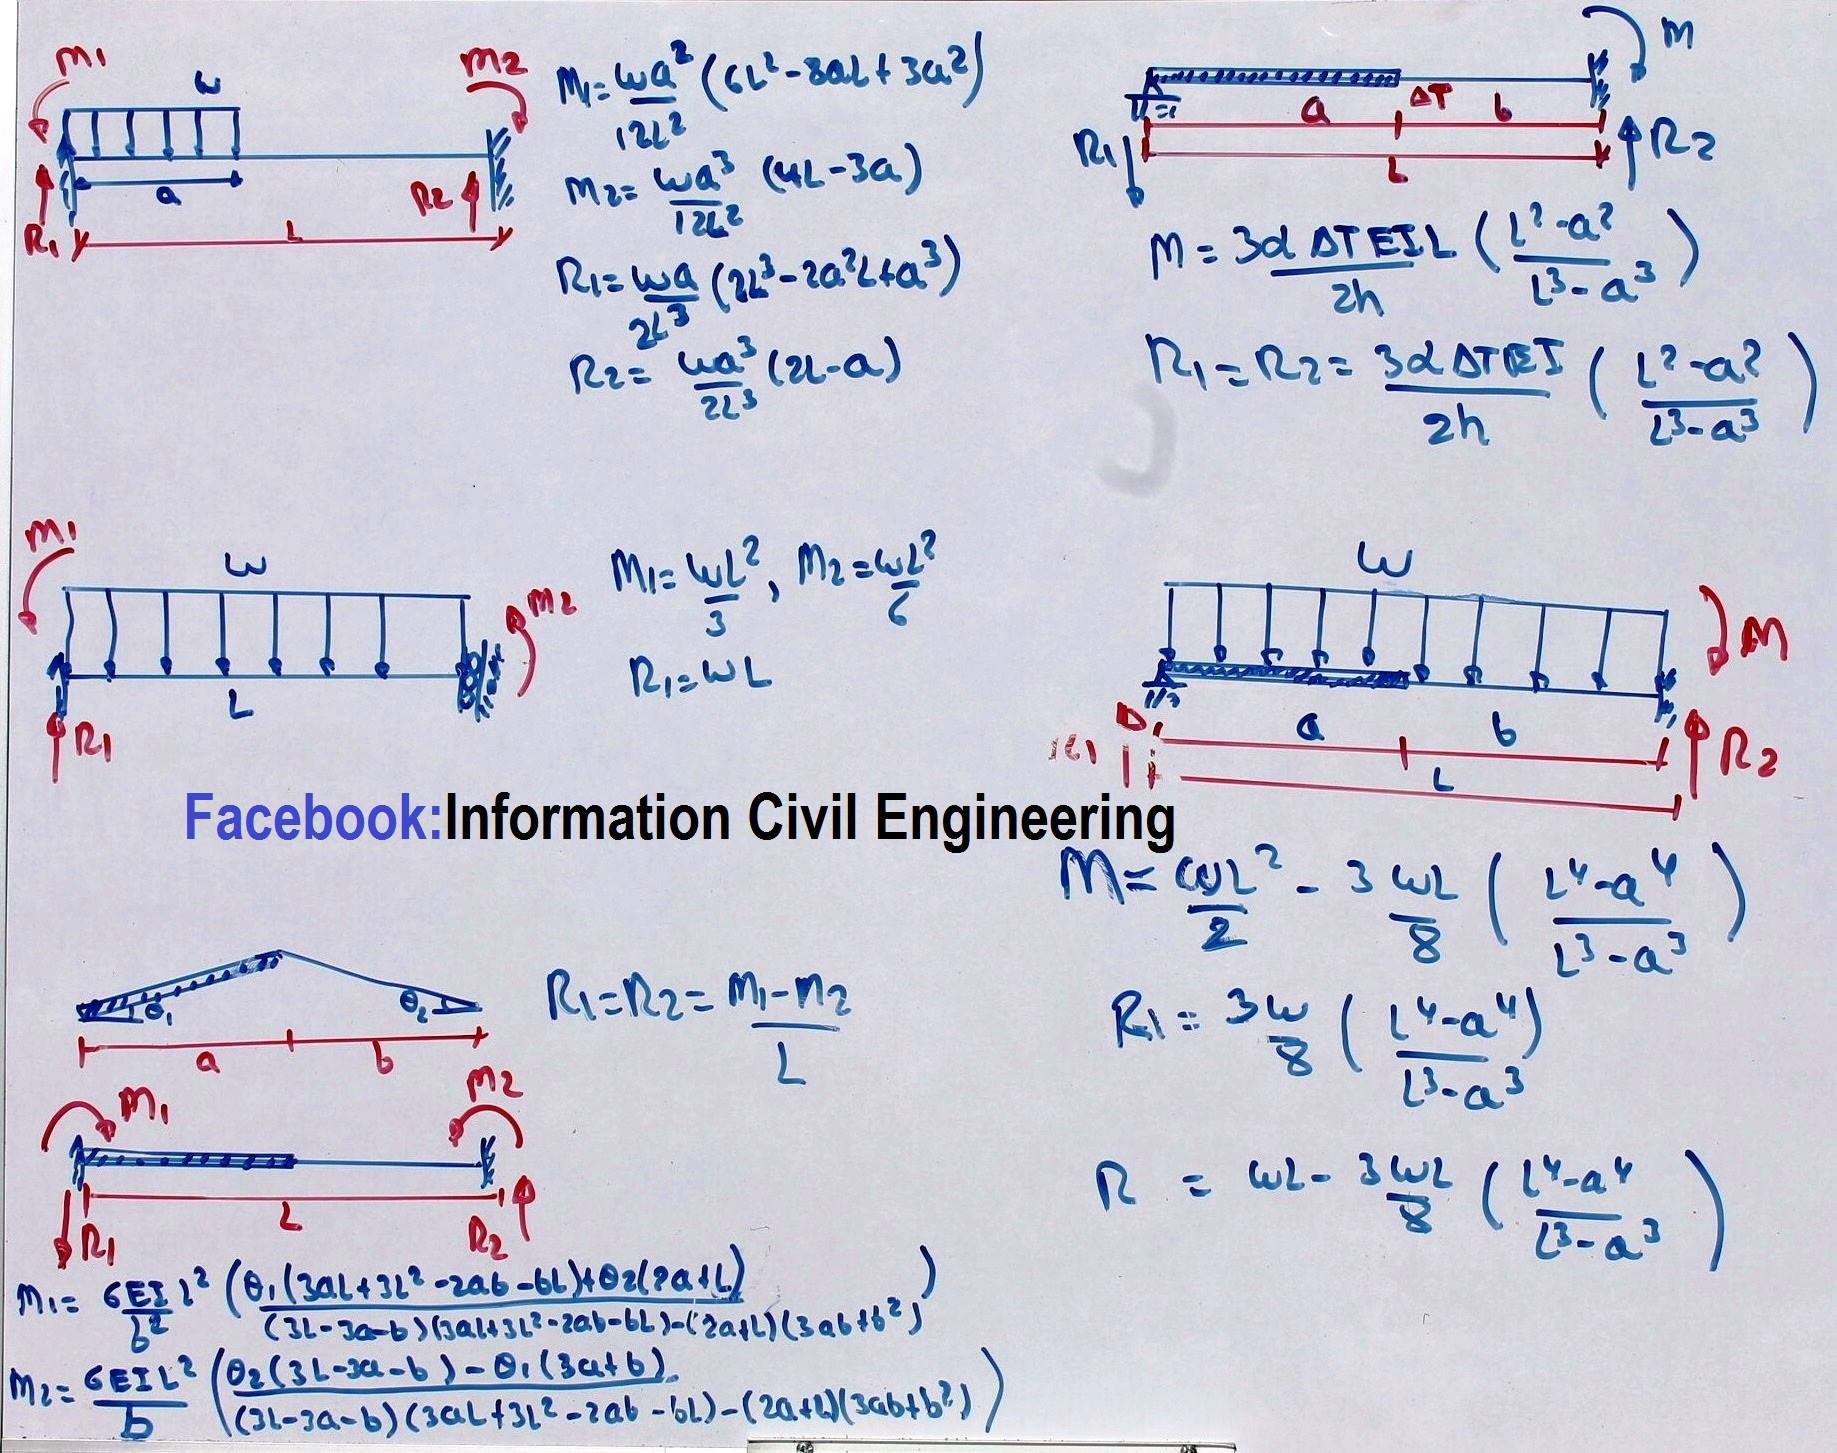 Structural Engineering Calculations : Important formulas for structural analysis engineering feed